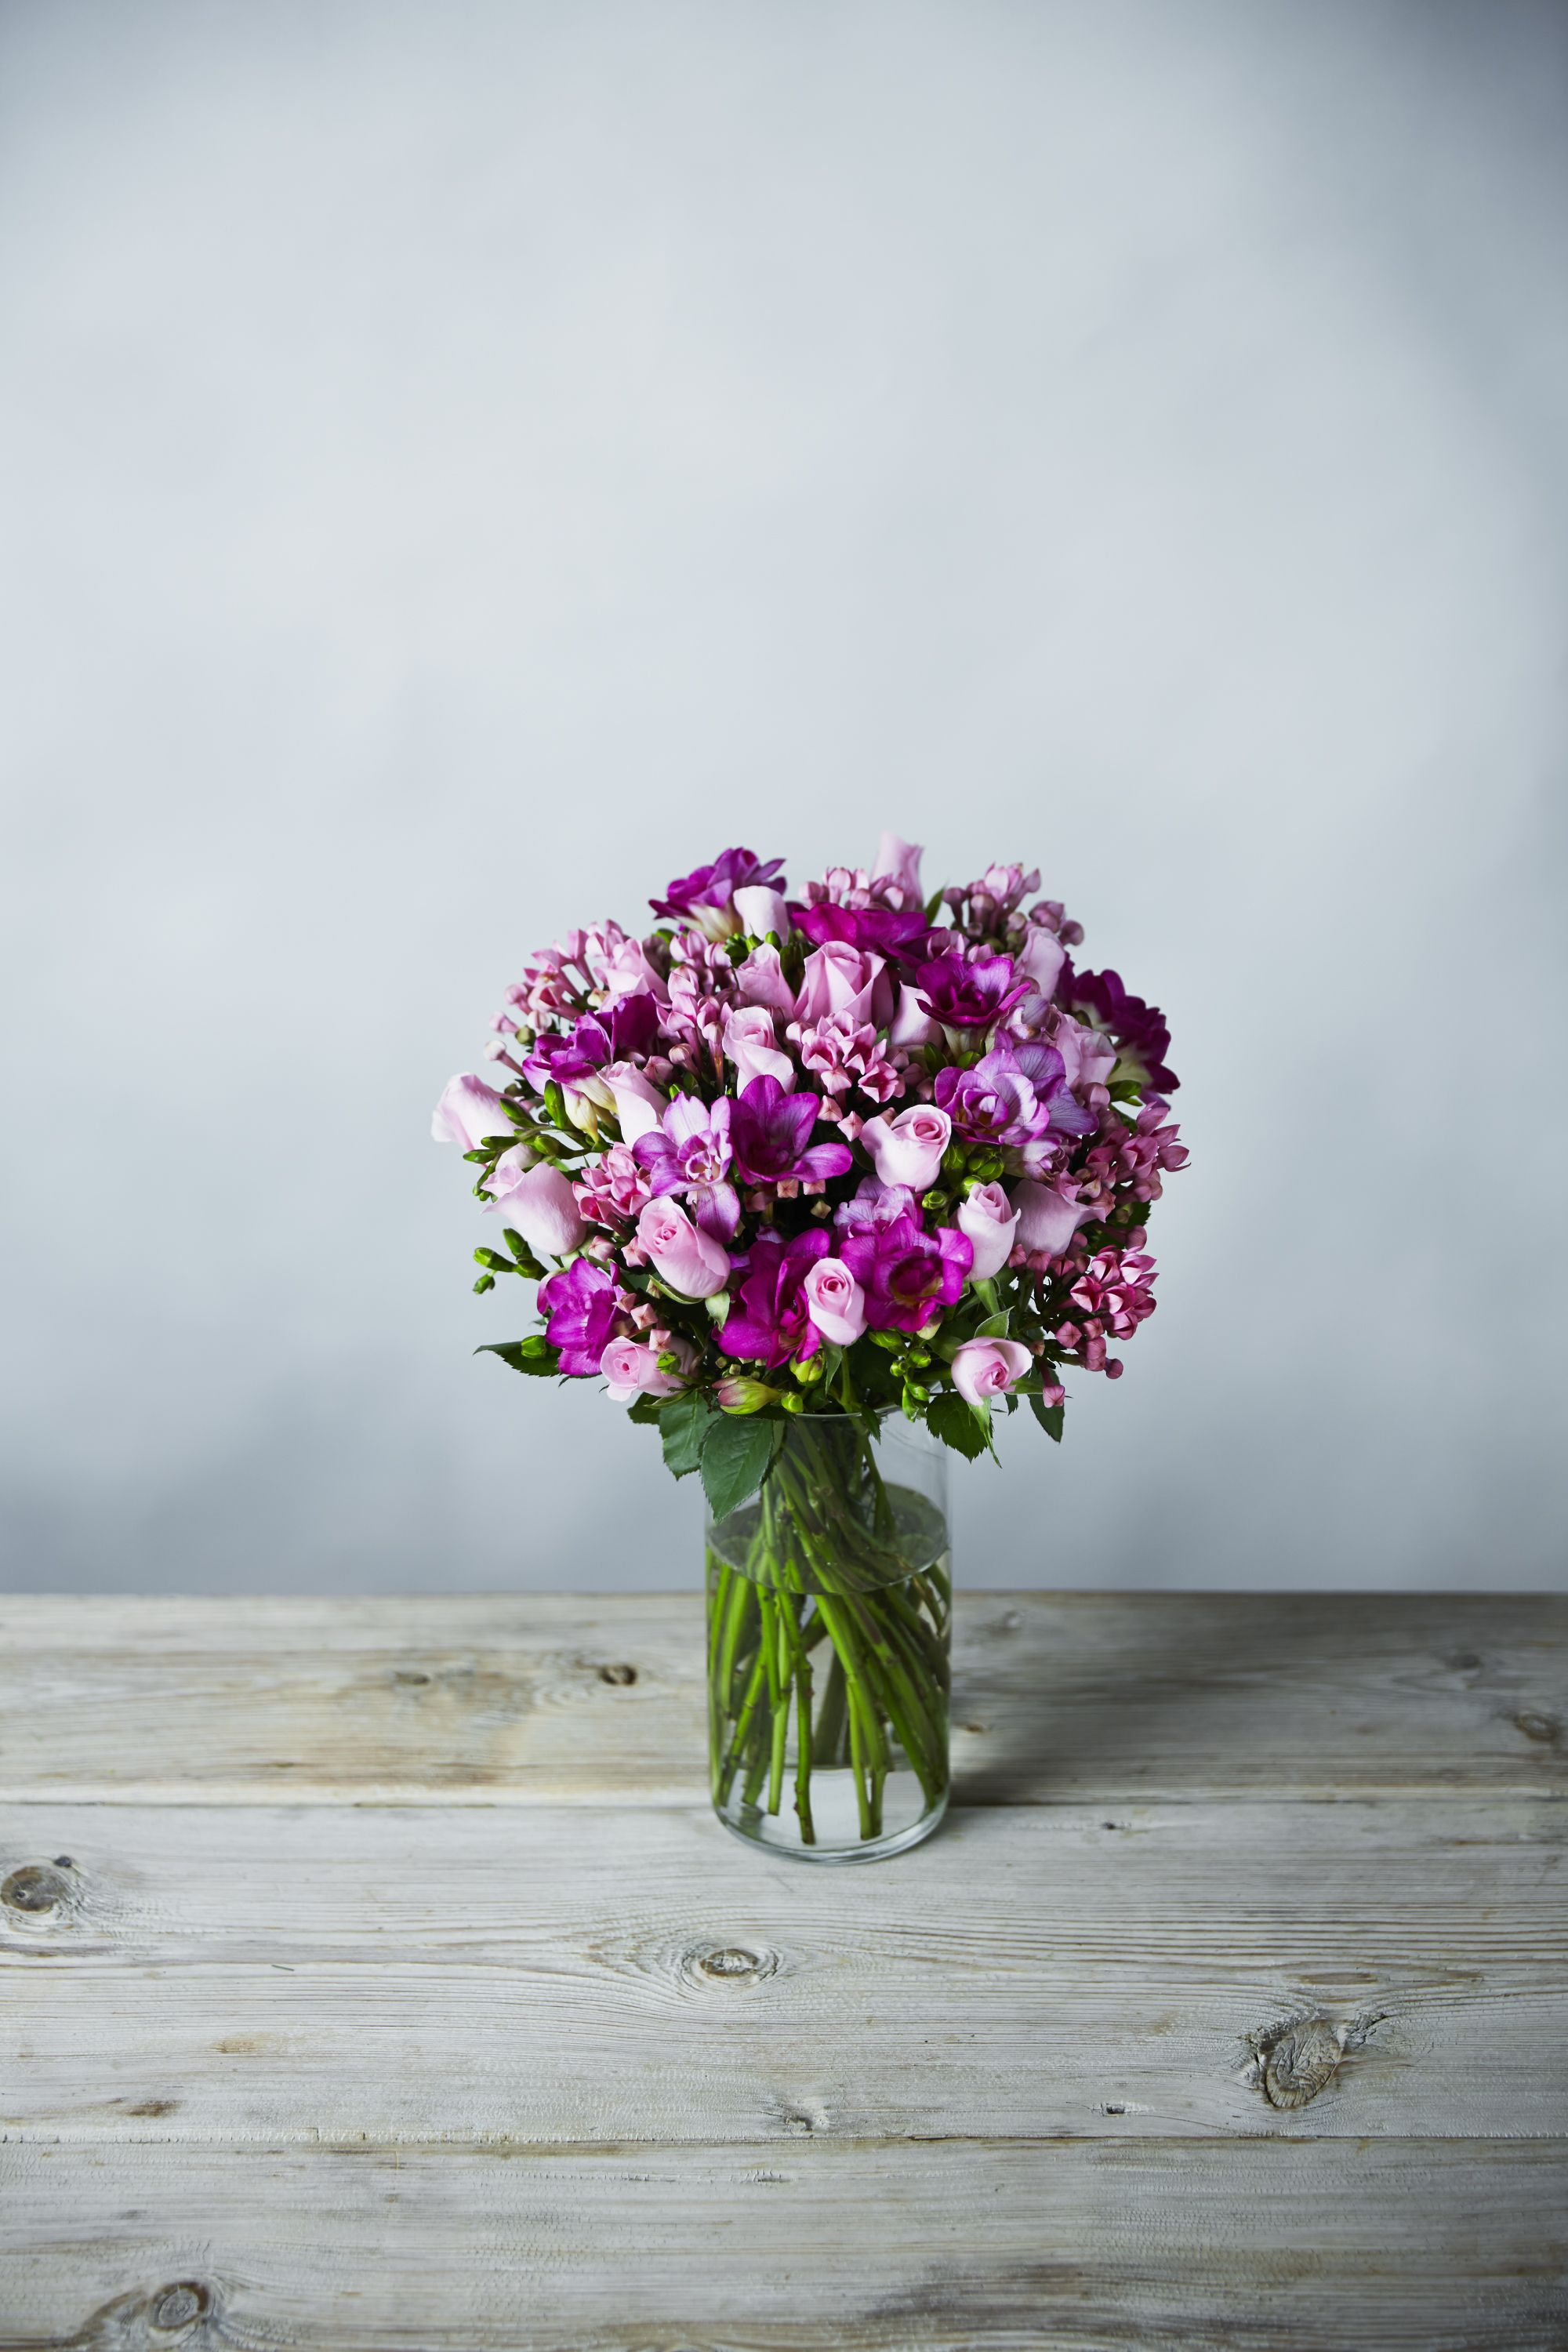 This super freesia and rose posy is a classic combination of this super freesia and rose posy is a classic combination of delicately scented freesias blushing izmirmasajfo